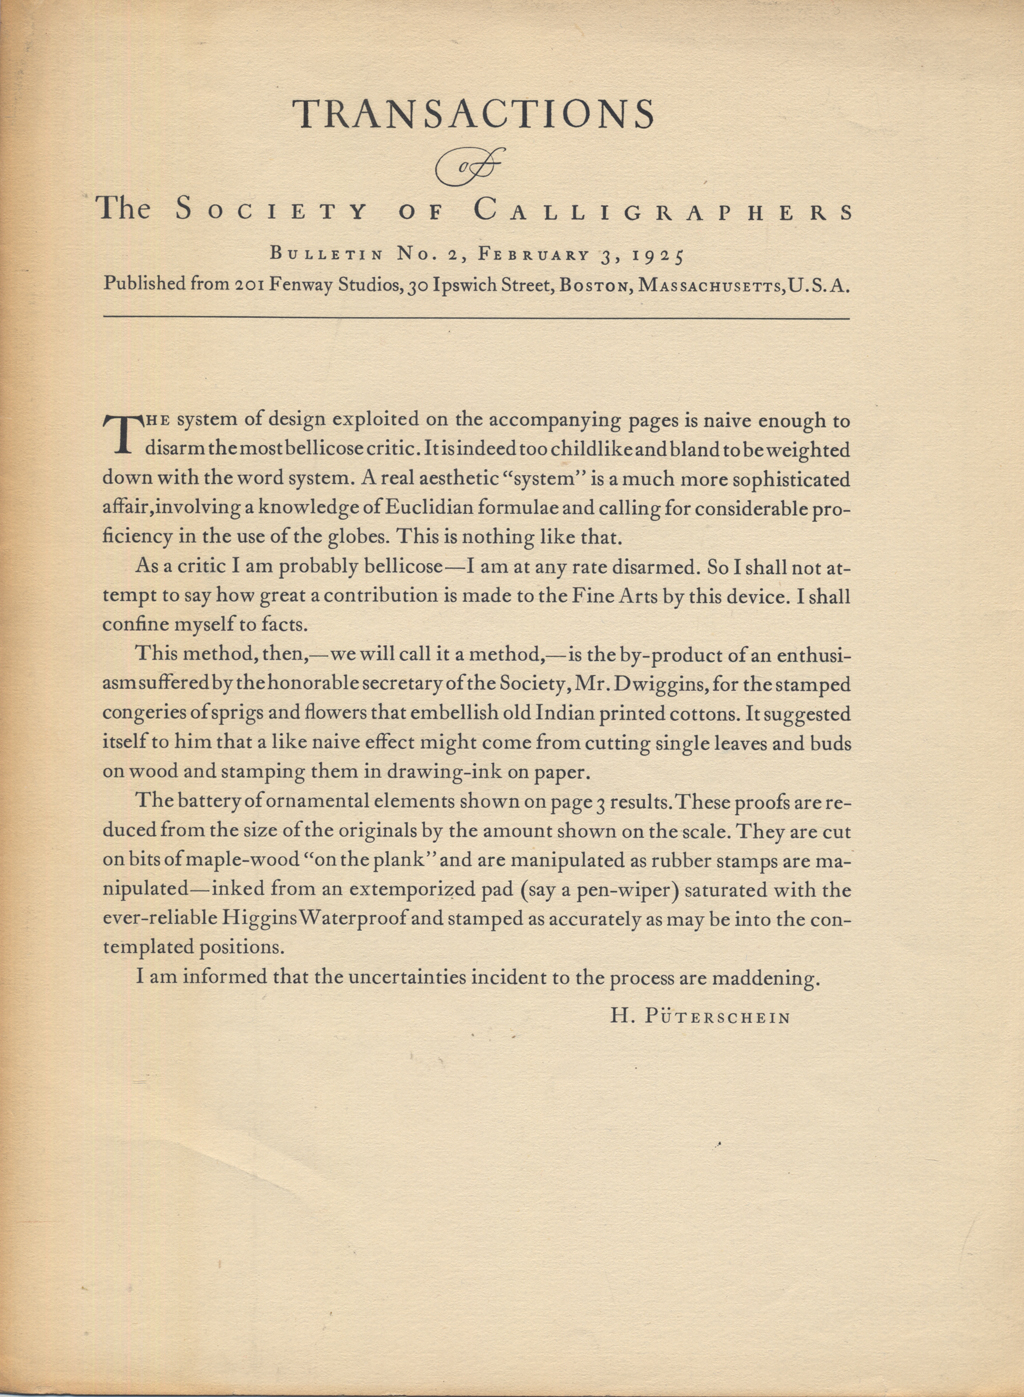 Bulletin No. 2 of the Transactions of The Society of Calligraphers (February 3, 1925). Design by W.A. Dwiggins.